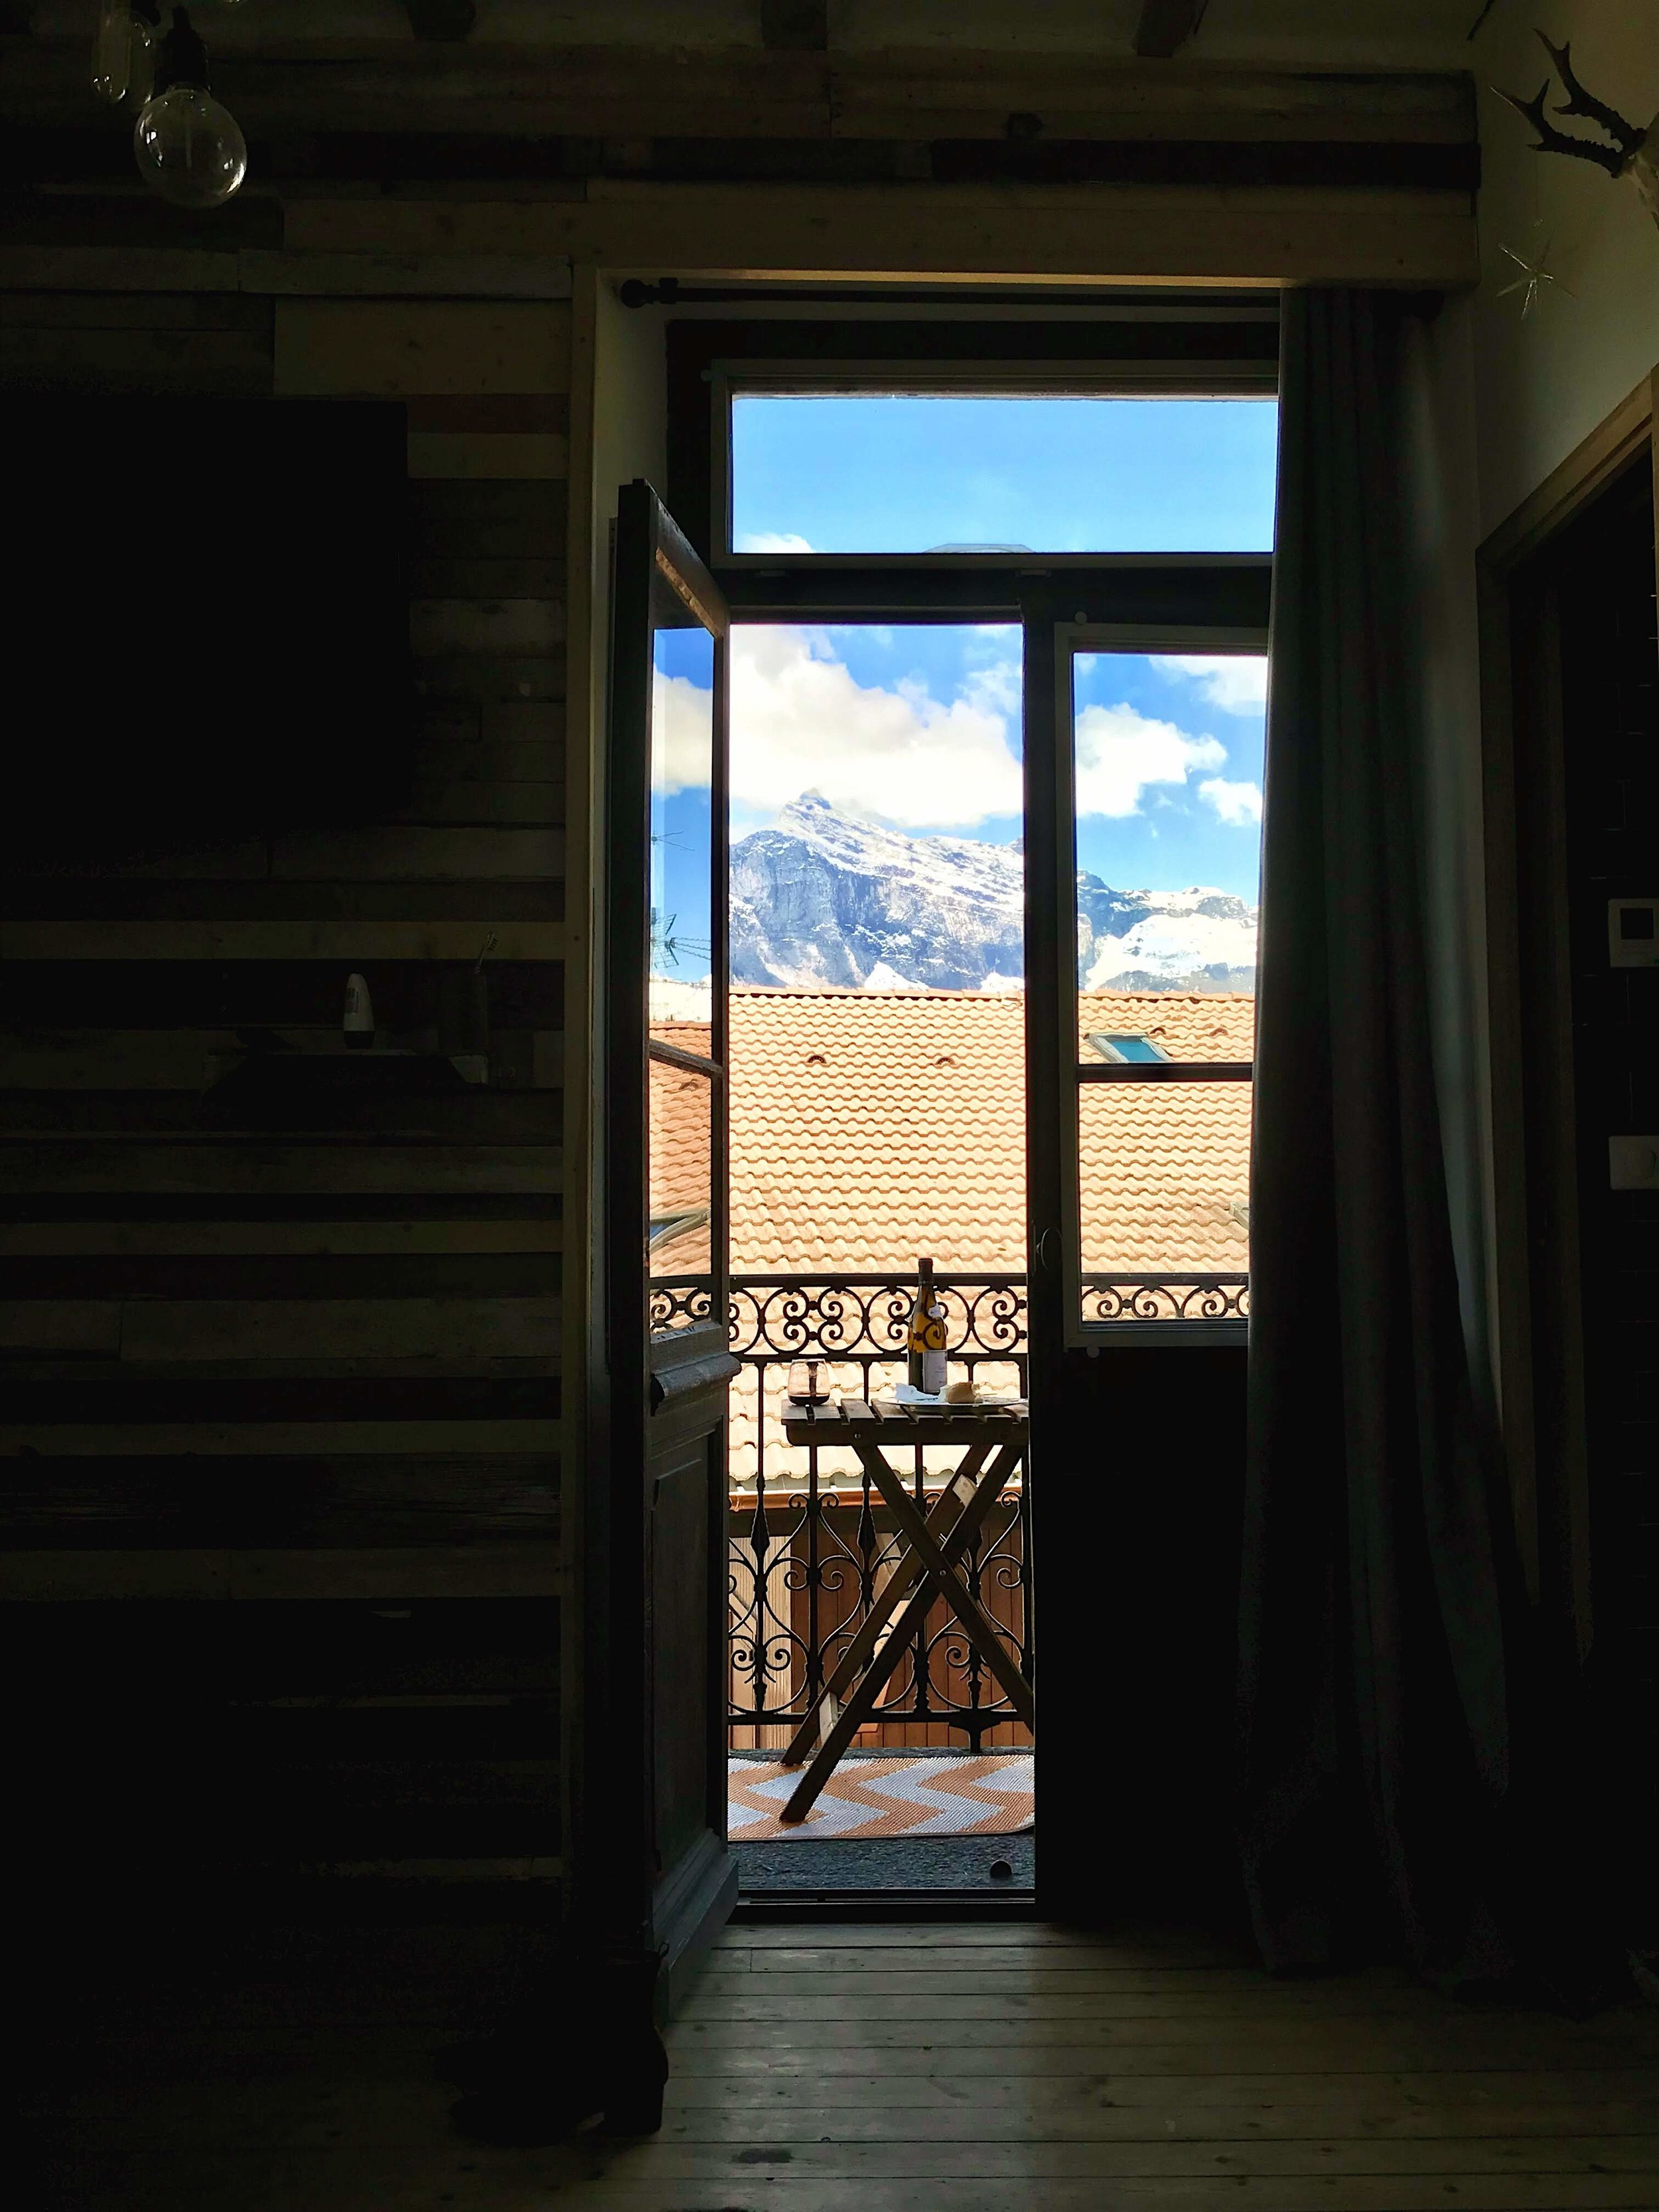 View from the patio in Saint Gervais